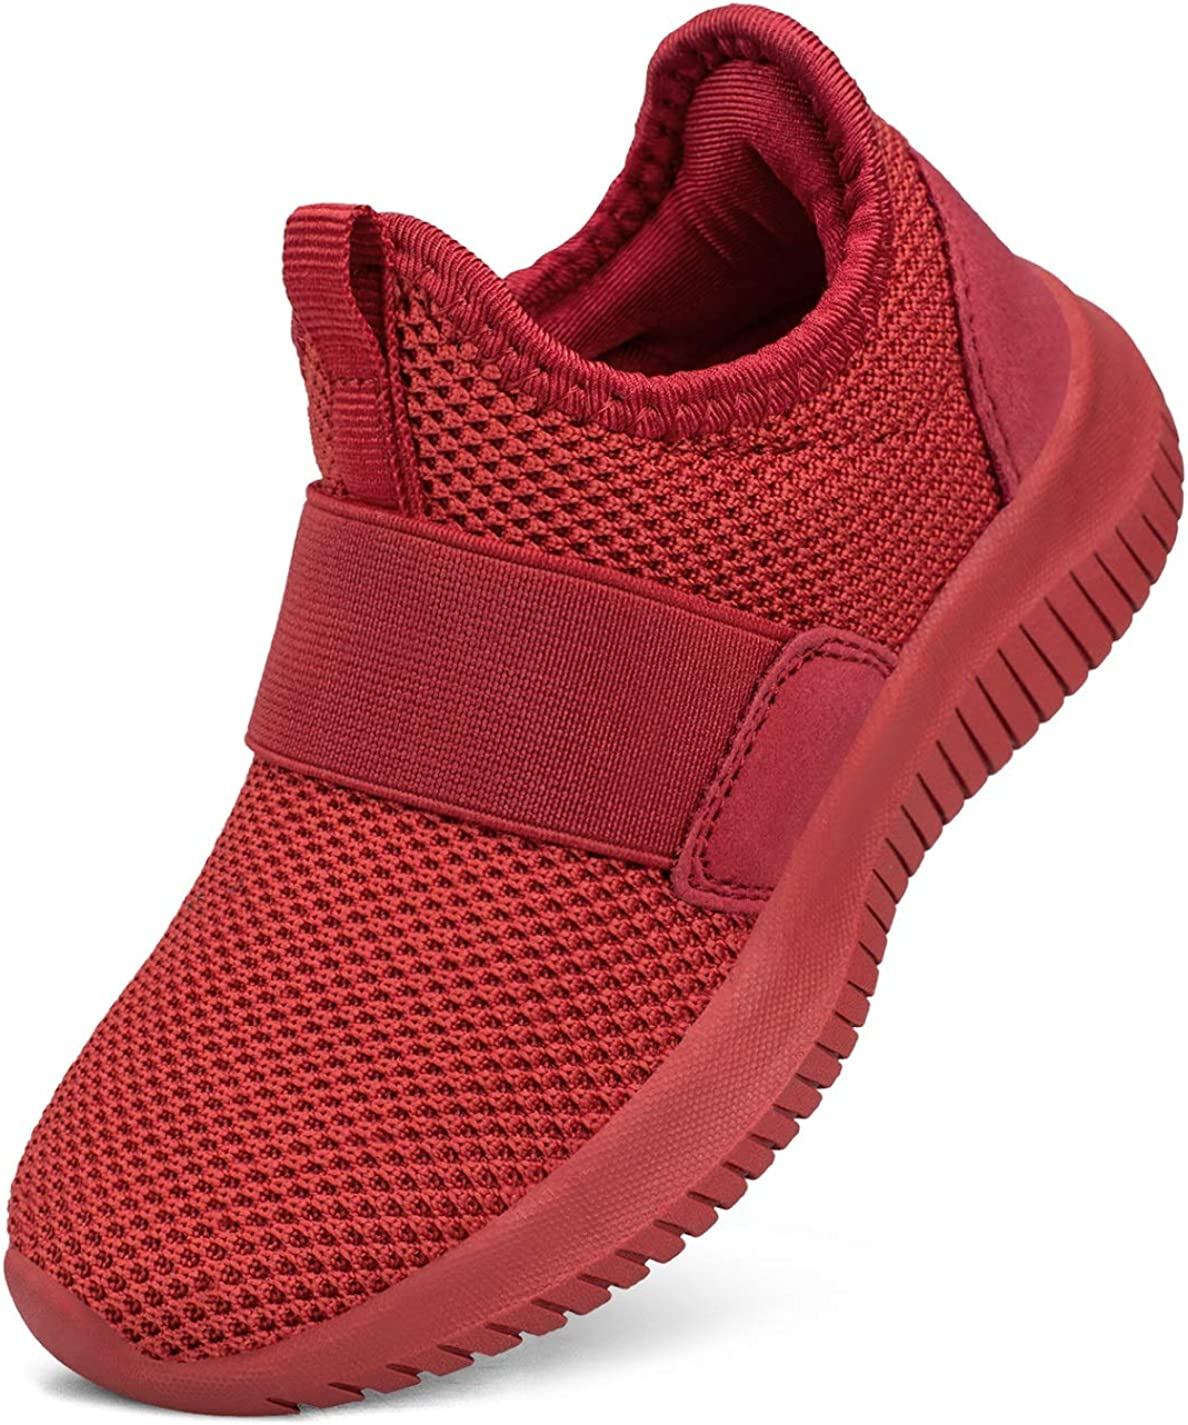 Troadlop Boys Girls Shoes Running Lightweight Breathable Fixed price for sale Tennis 5% OFF